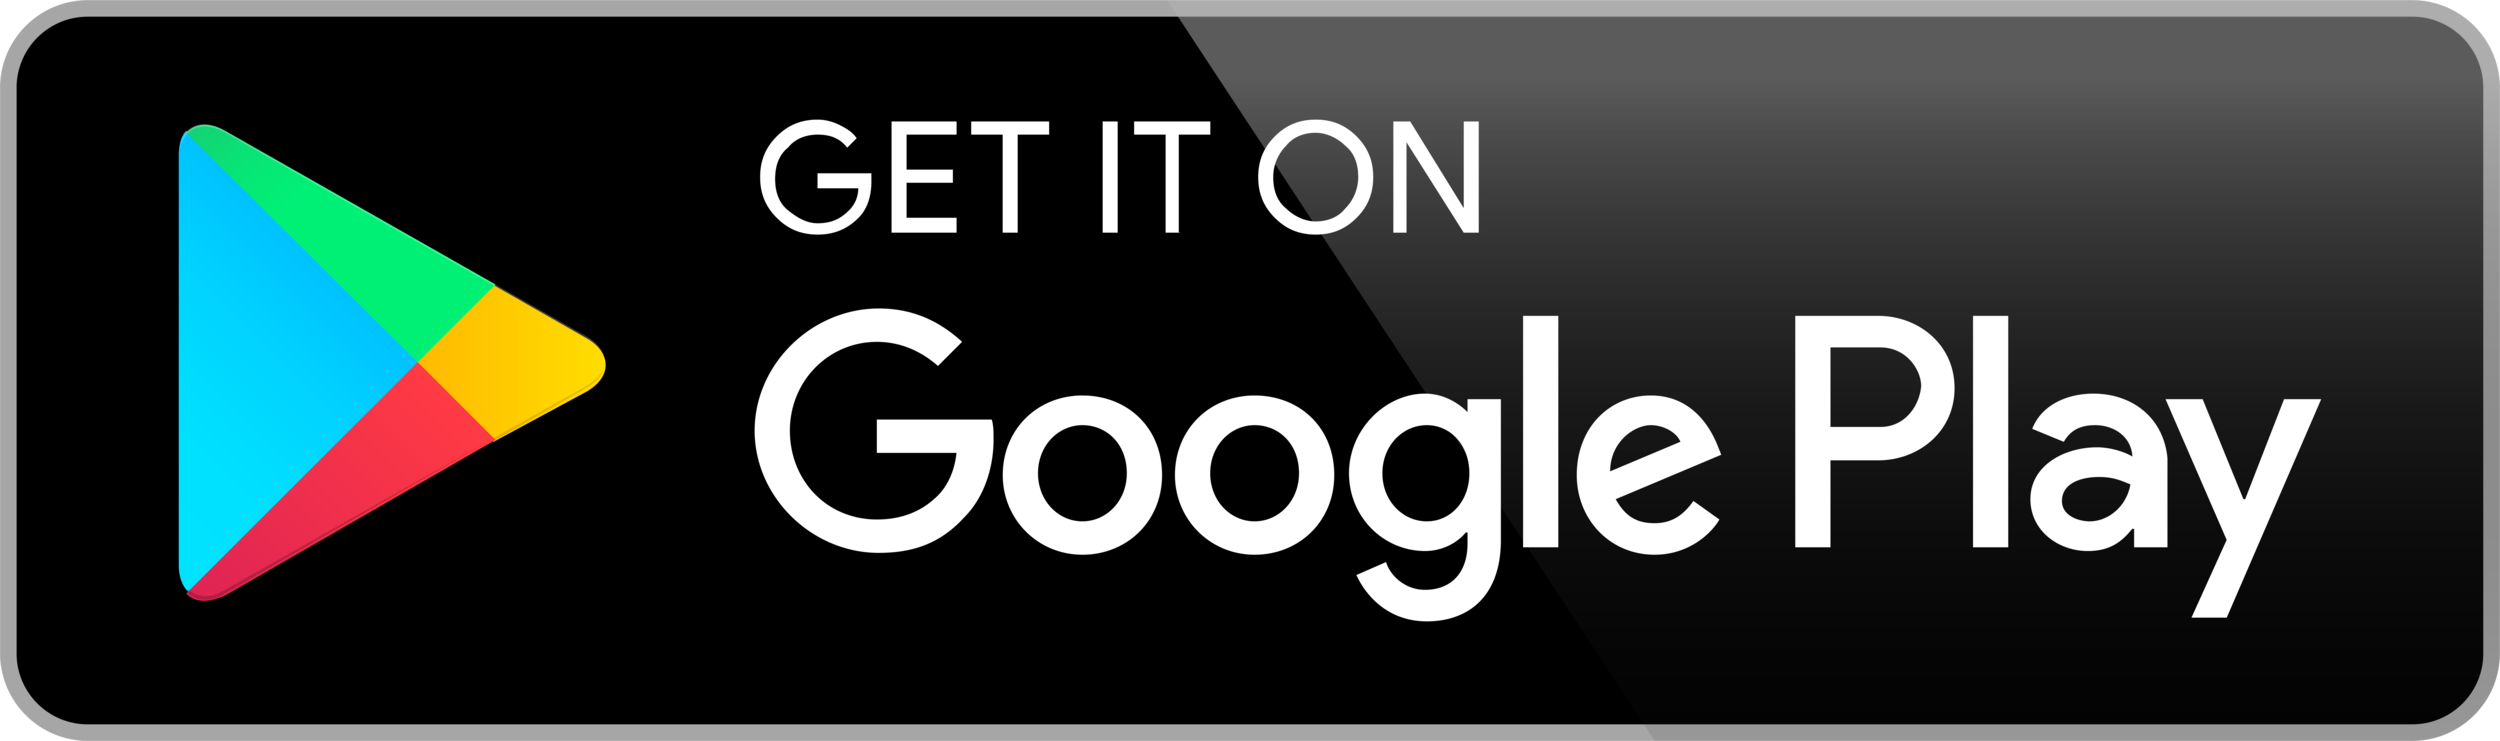 Google Play logo PM version-01.png